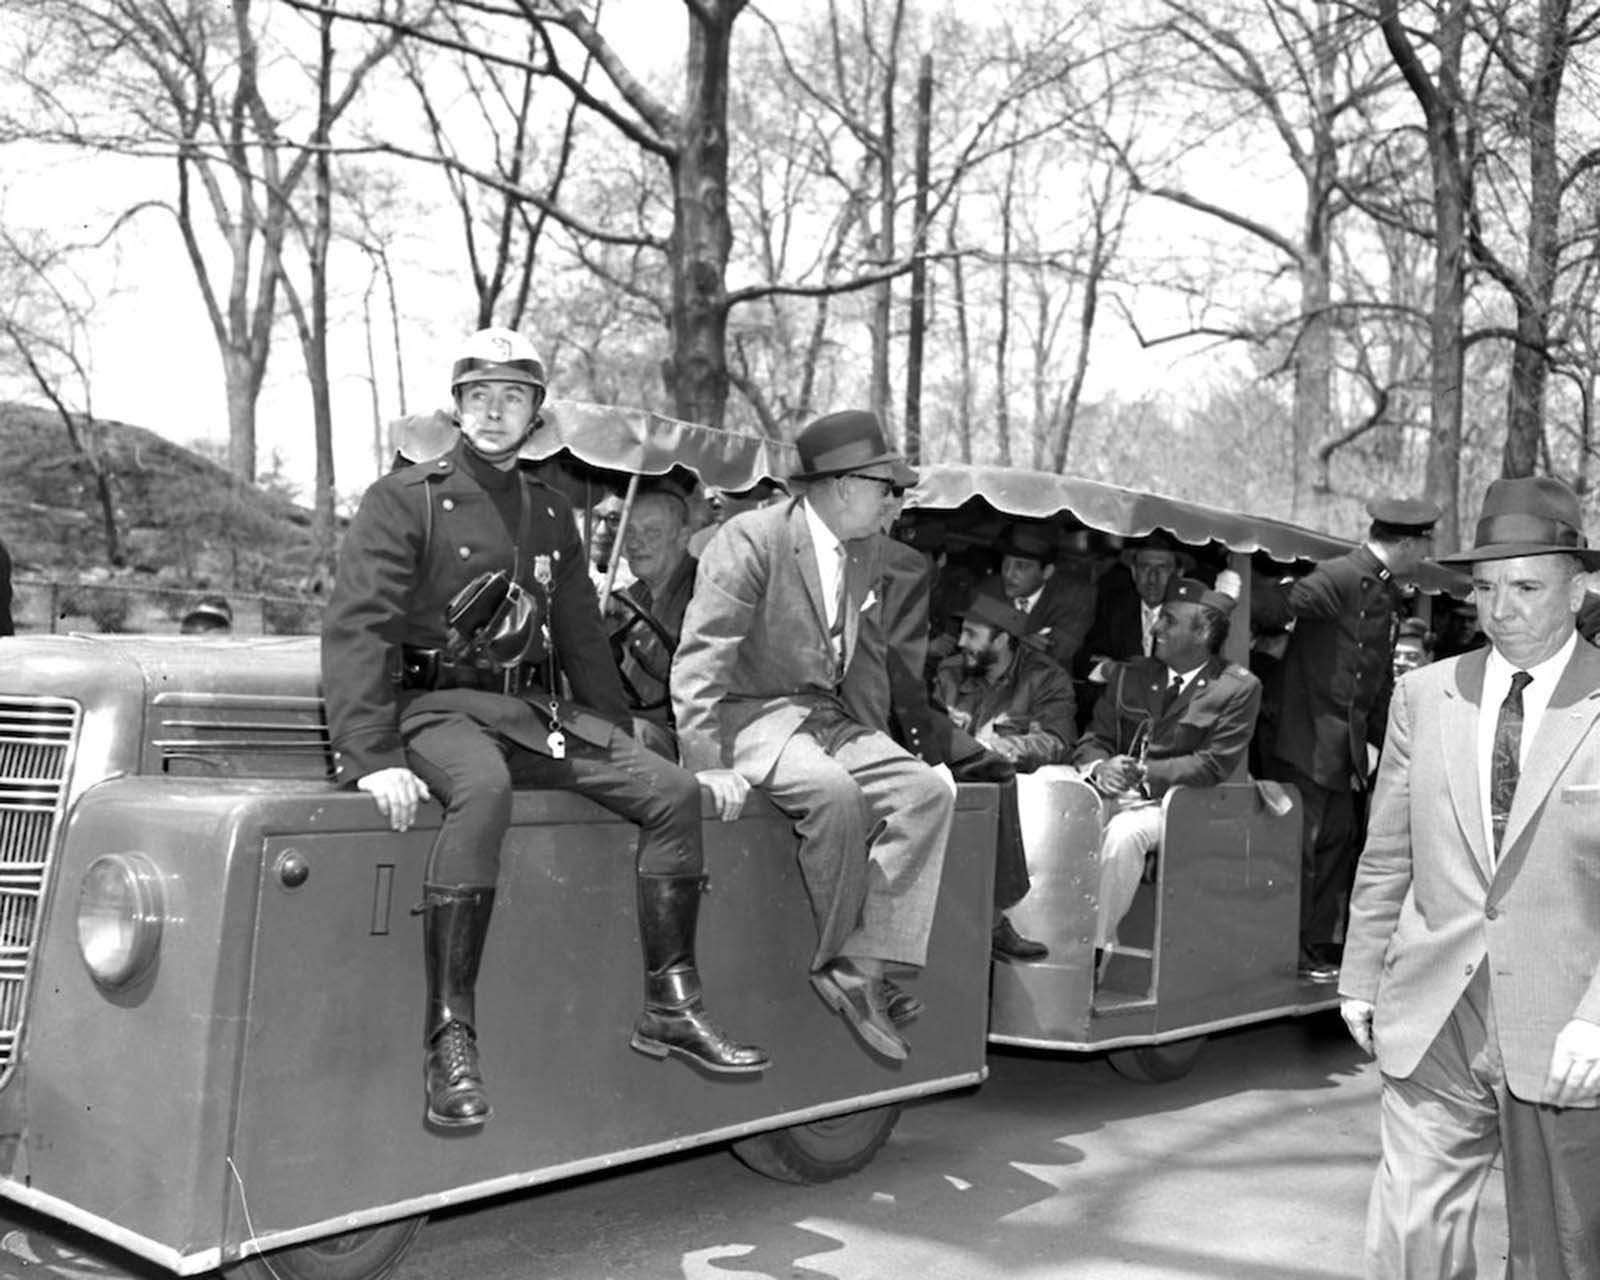 Police and plainclothes detectives ride the miniature railway transporting Fidel Castro during his tour of the Bronx Zoo.